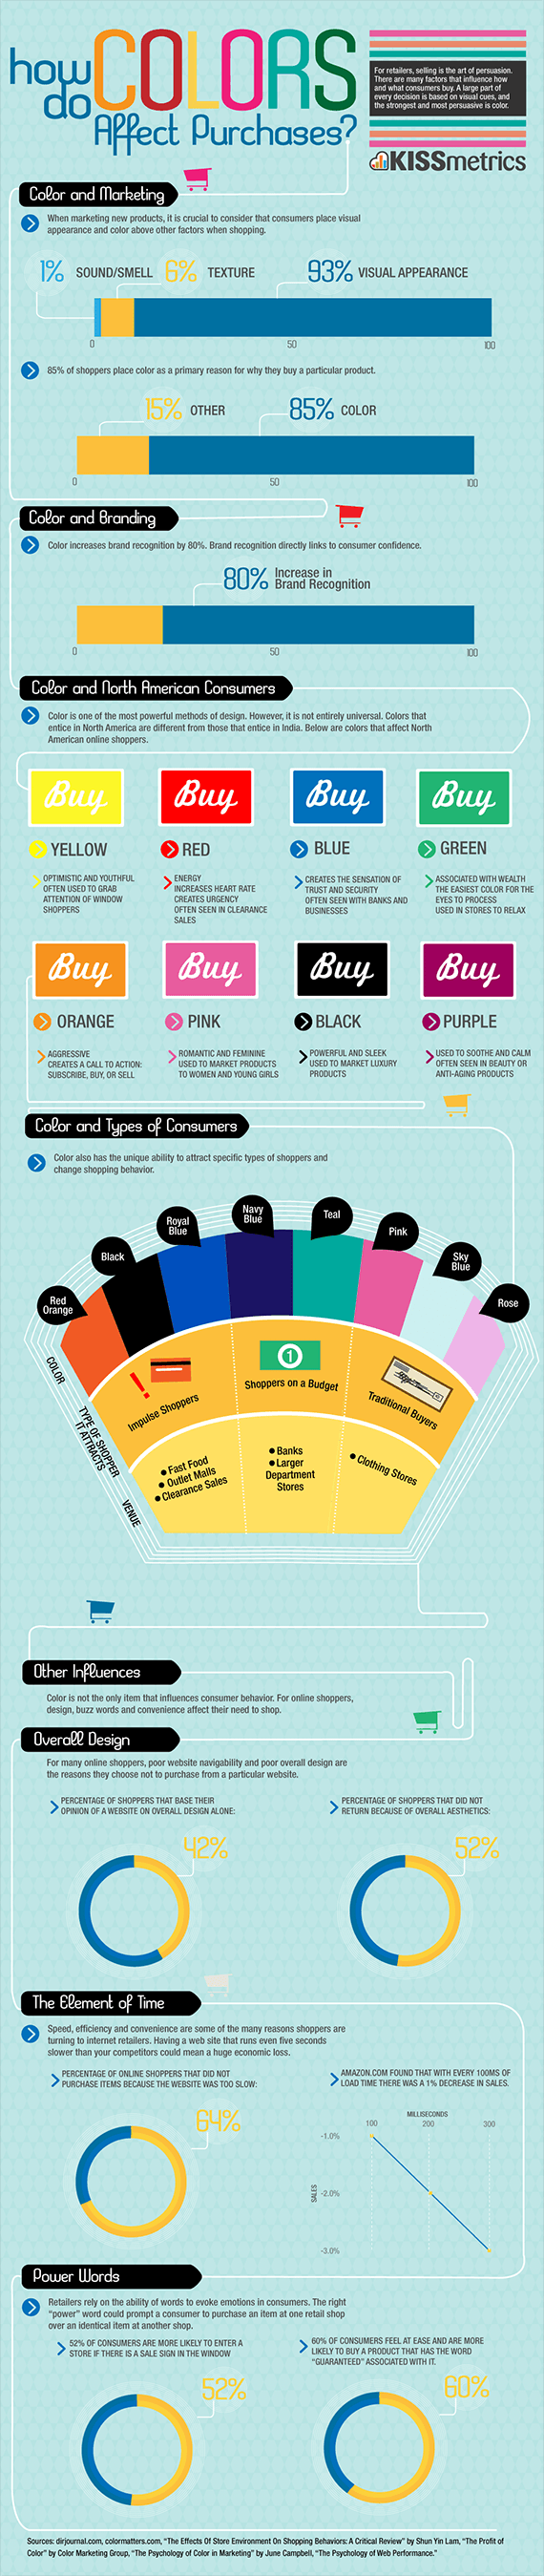 How Do Colours Help Sell Products and Services?